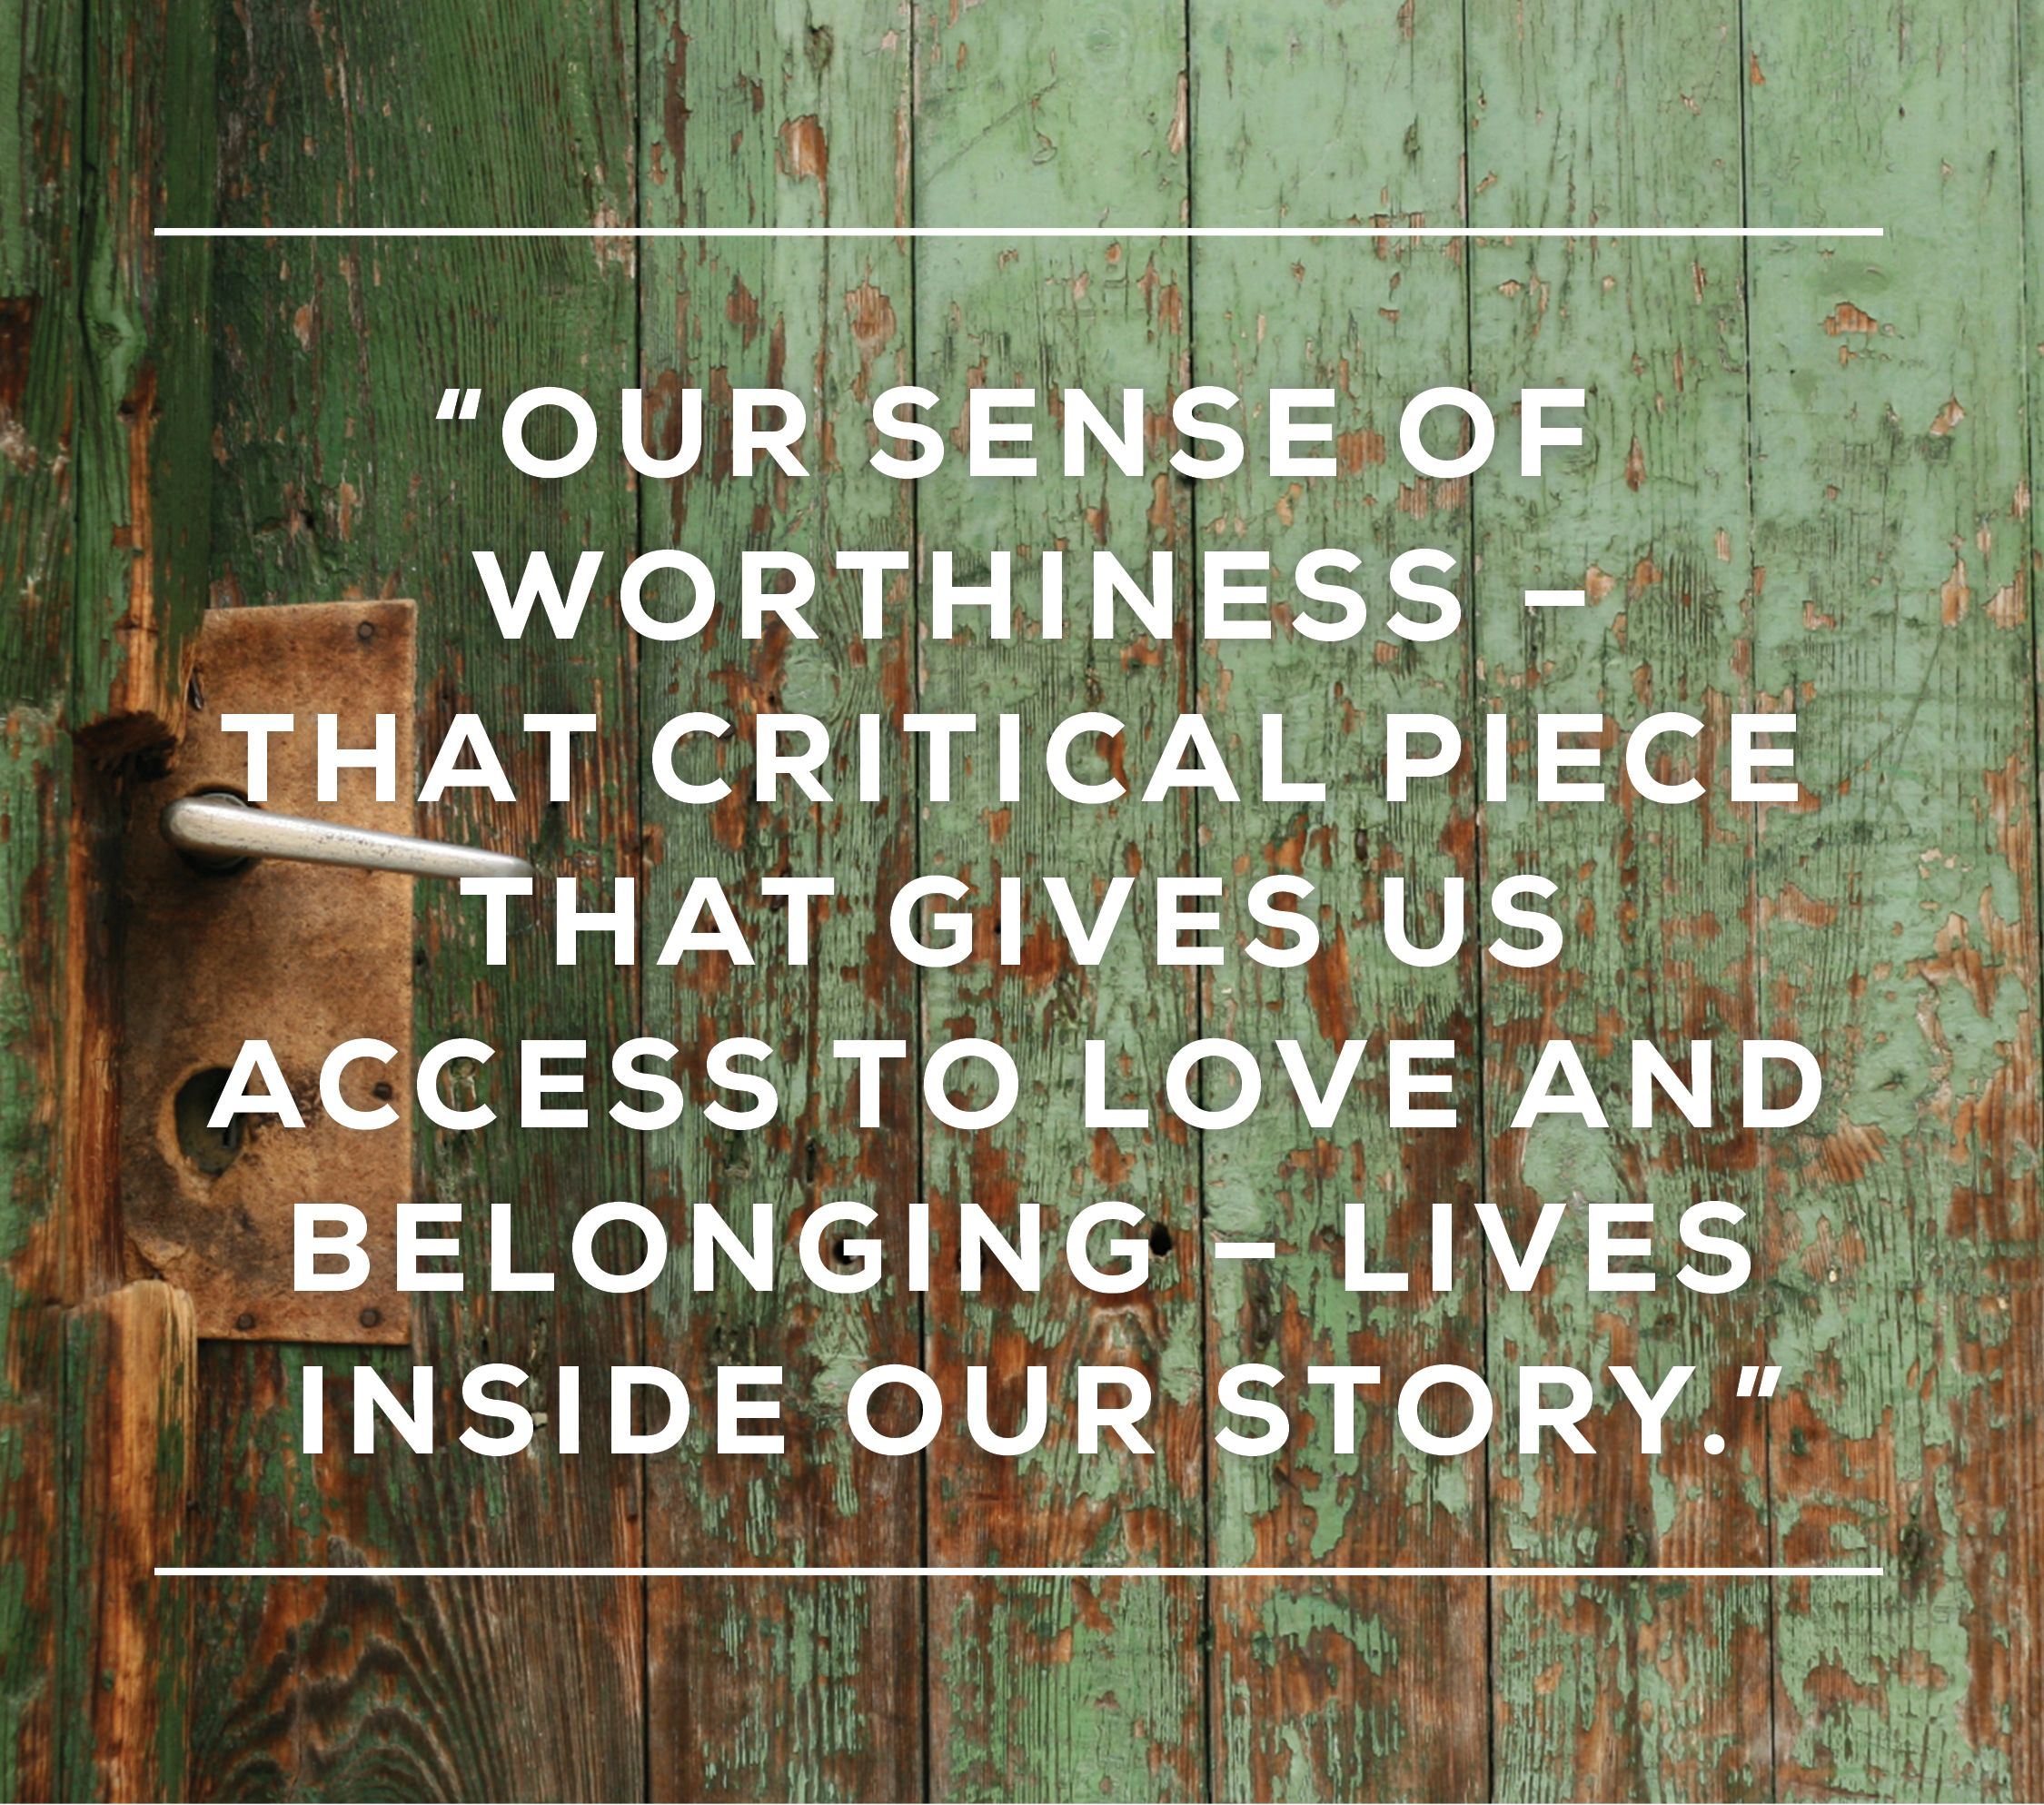 Quote By Brene Brown That States Our Sense Of Worthiness